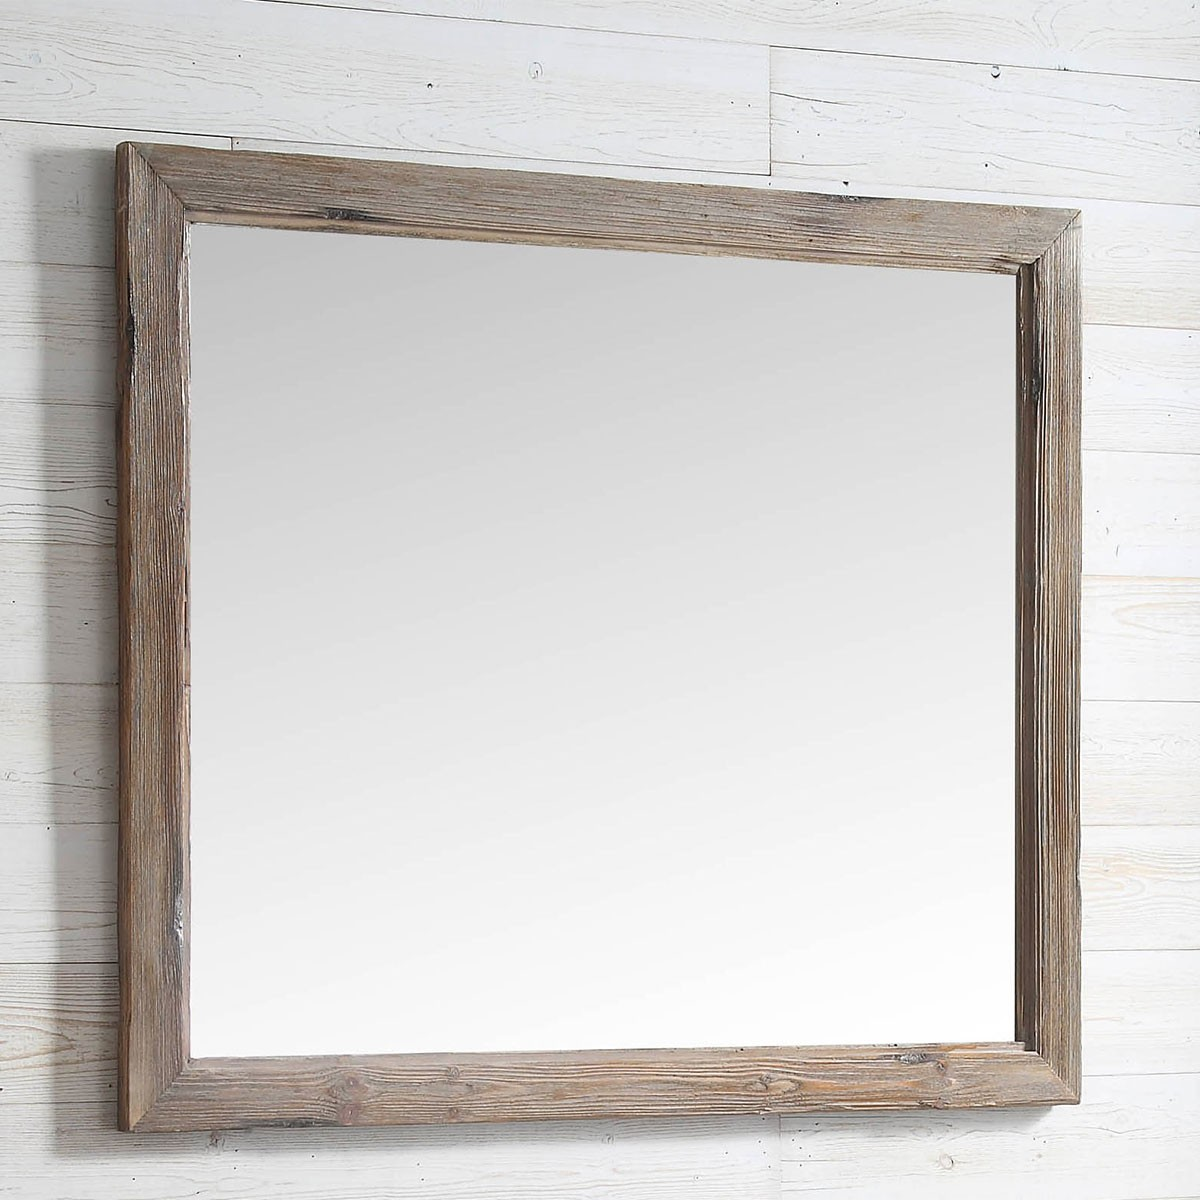 42 x 36 In Bath Vanity Décor Mirror with Fir Wood Frame (DK-WH9342-SW)